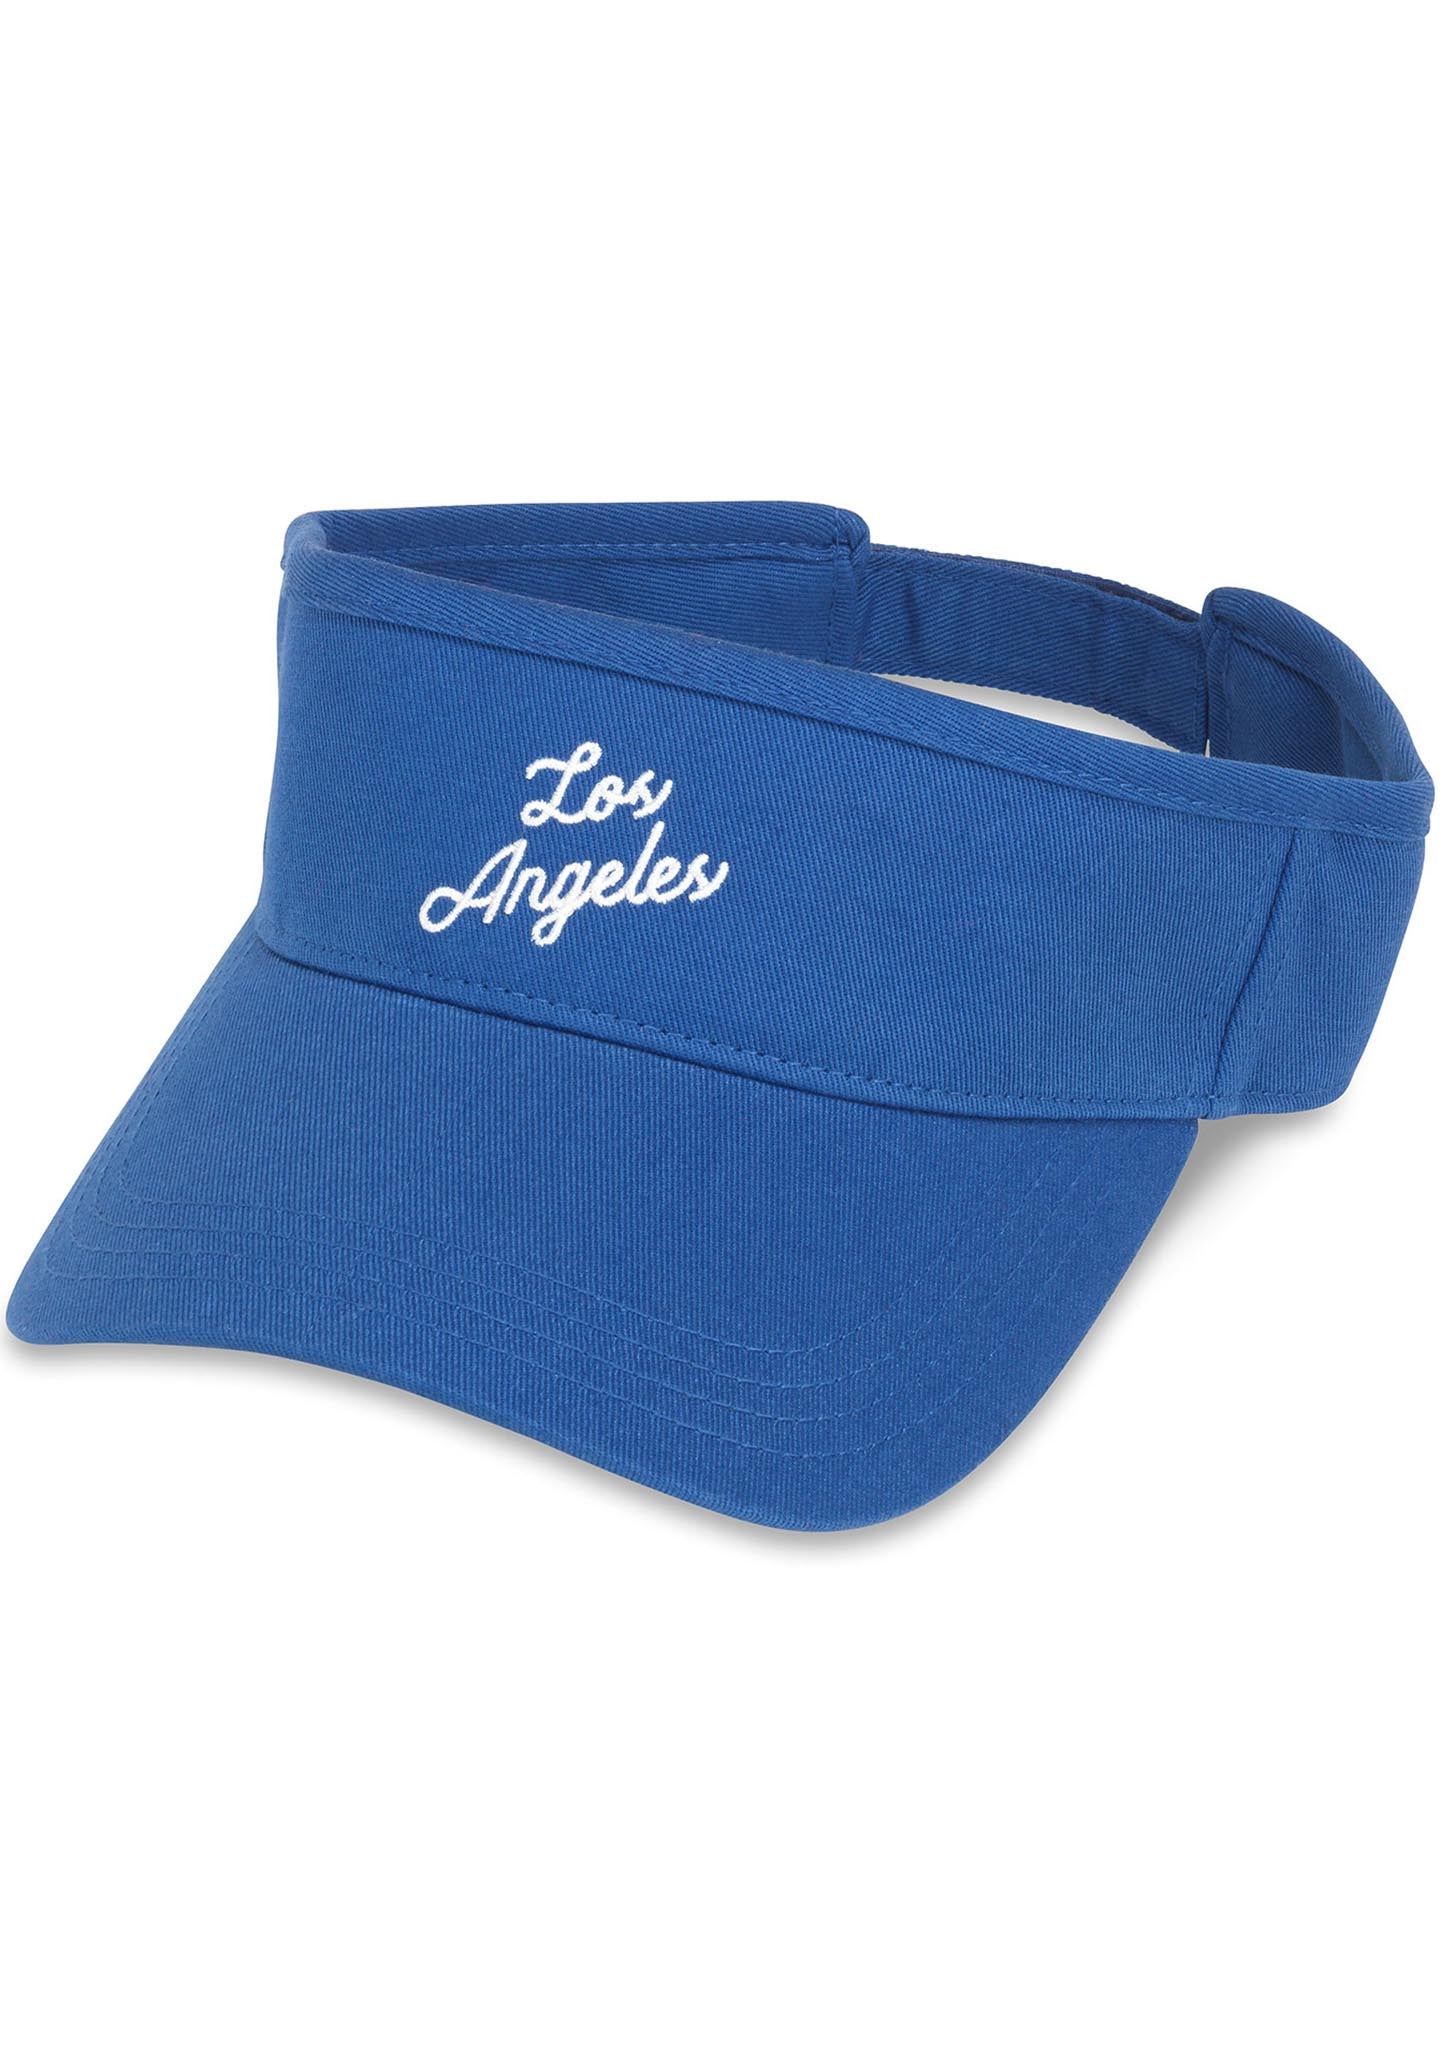 Los Angeles Boards Shorts Visor